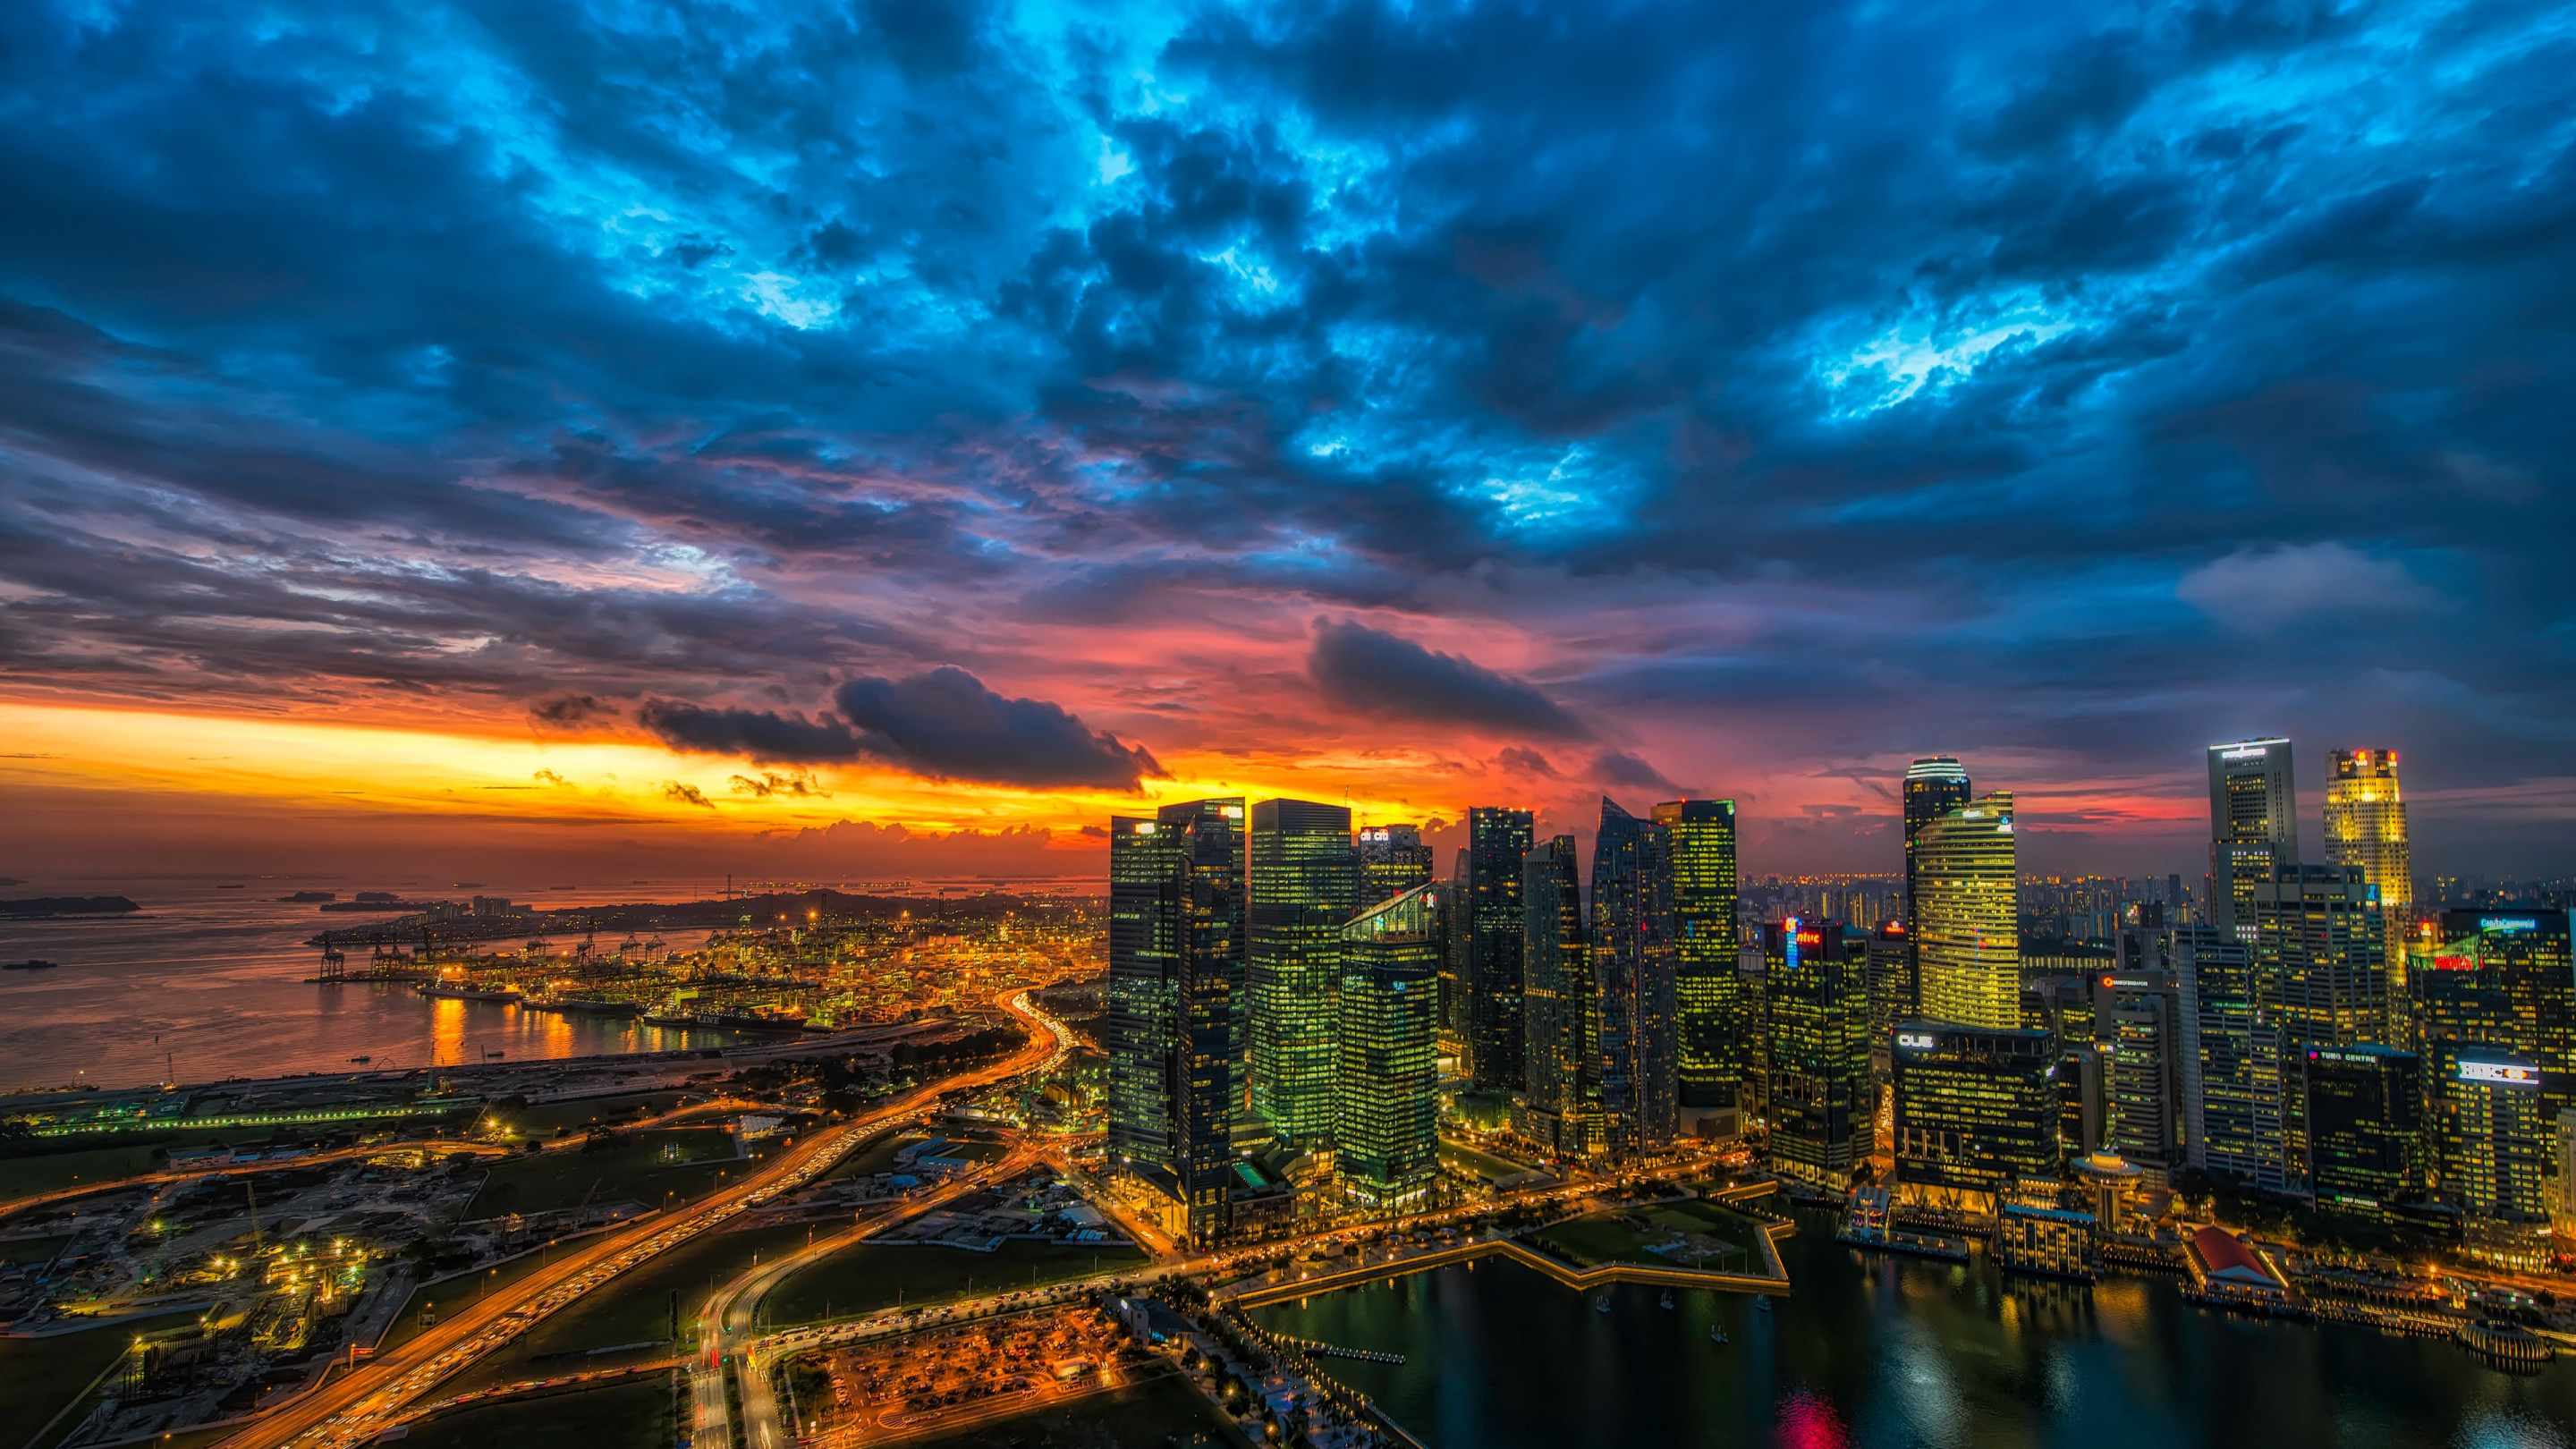 Panoramic view of Singapore wallpaper 2880x1620